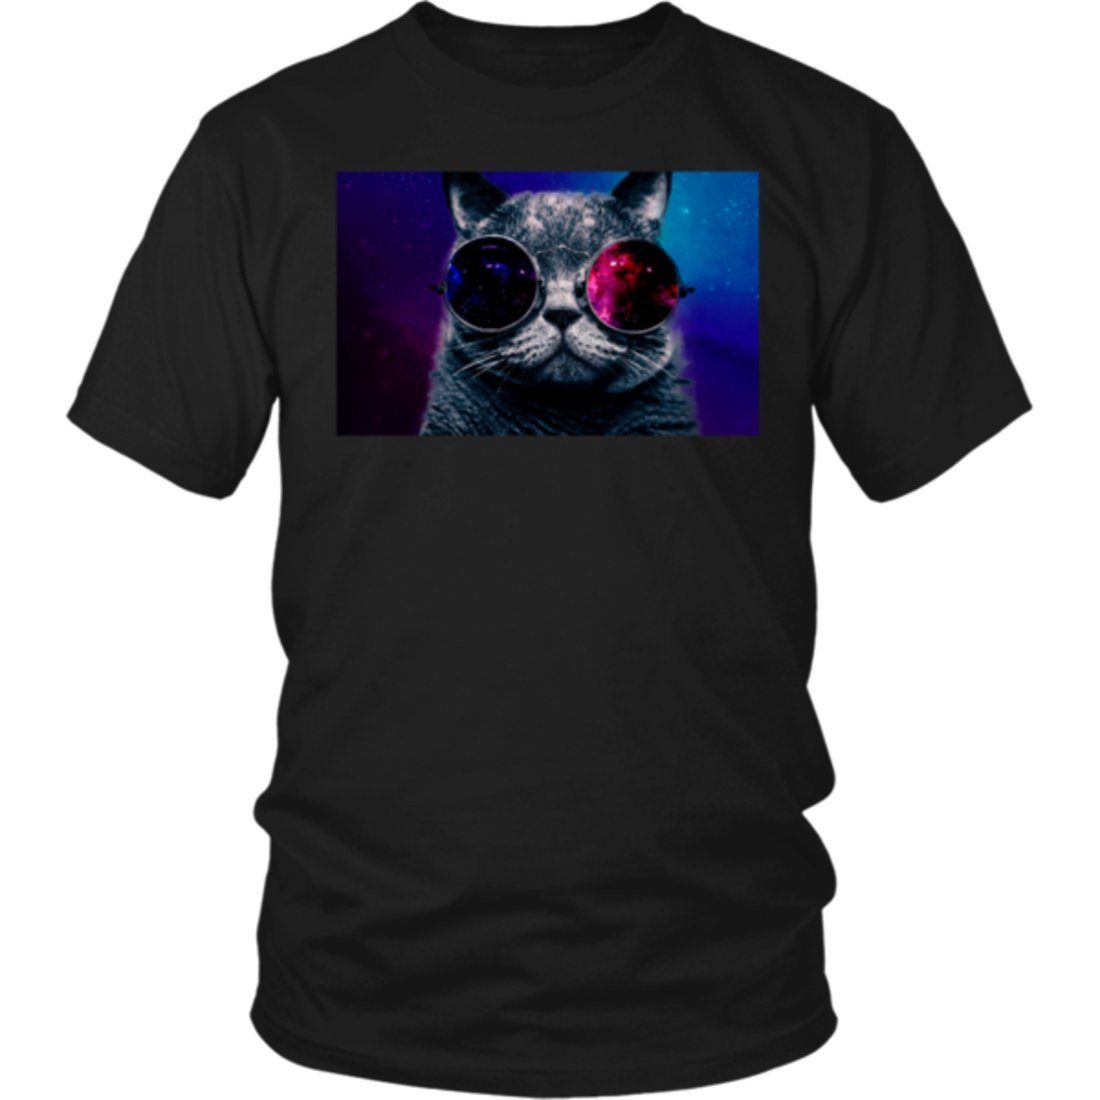 Cat Space Glasses Shirt Astronaut Cat Meme Round Glasses Tee